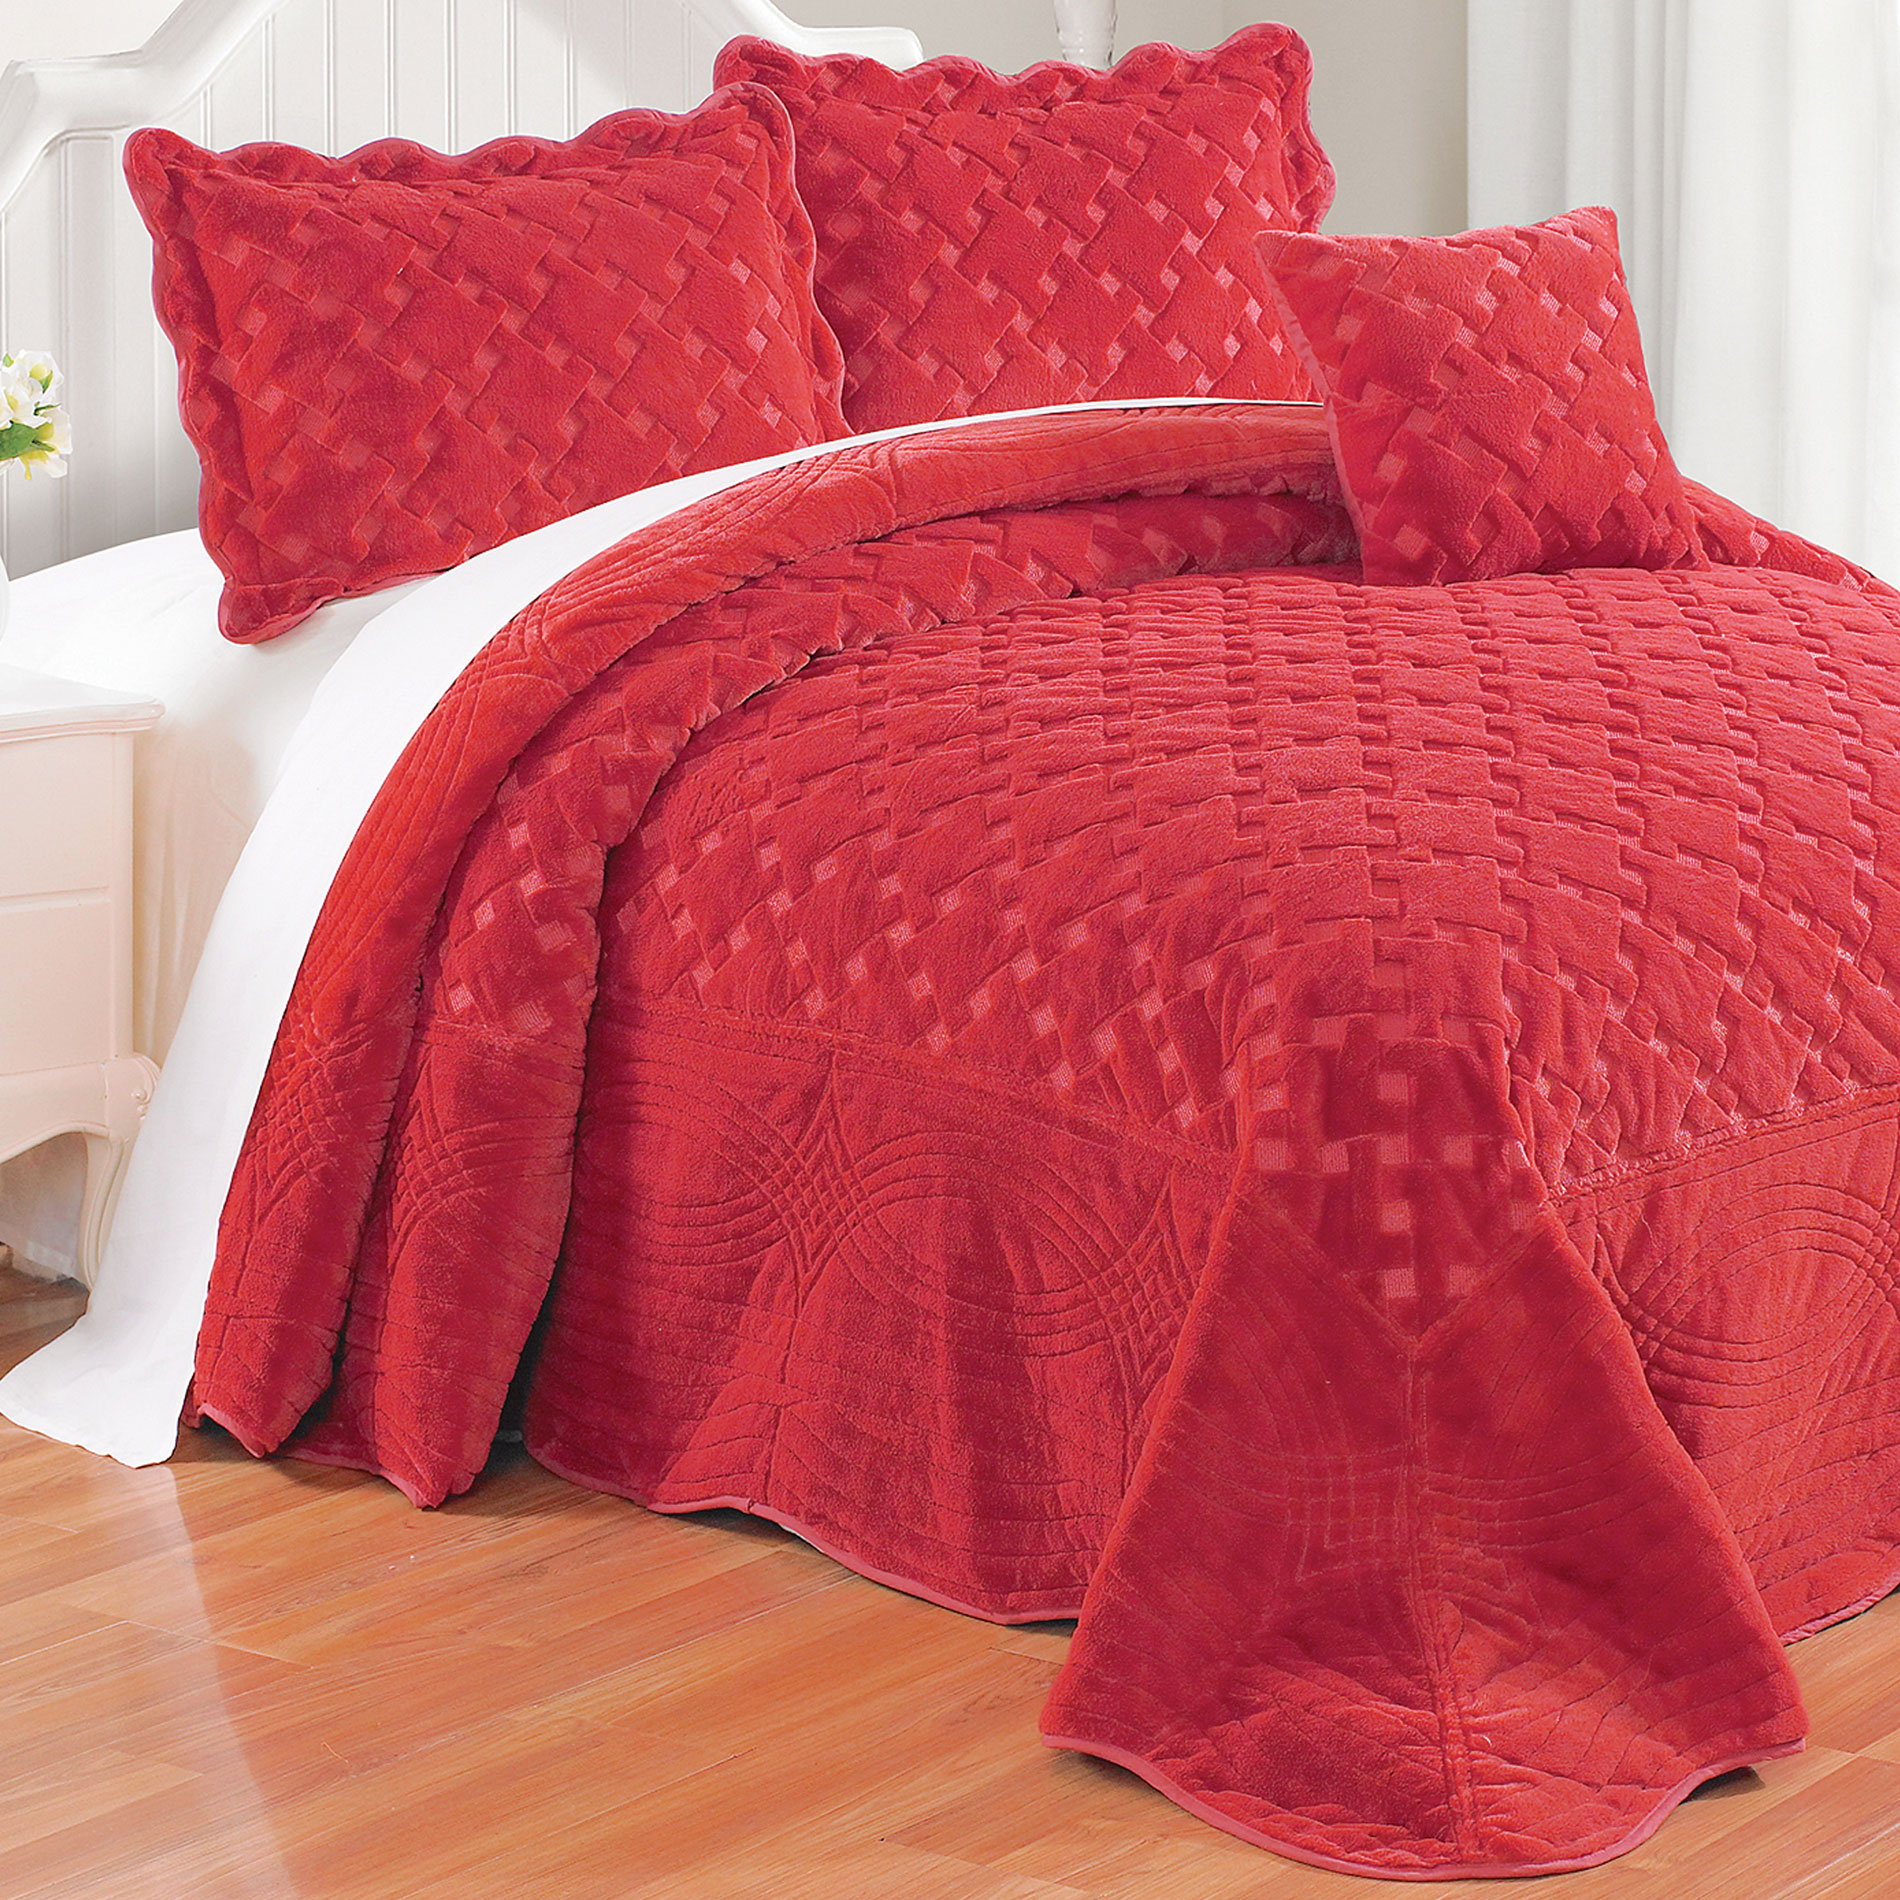 Serenta Tatami Quilted Faux Fur 4 Piece Bedspread Set